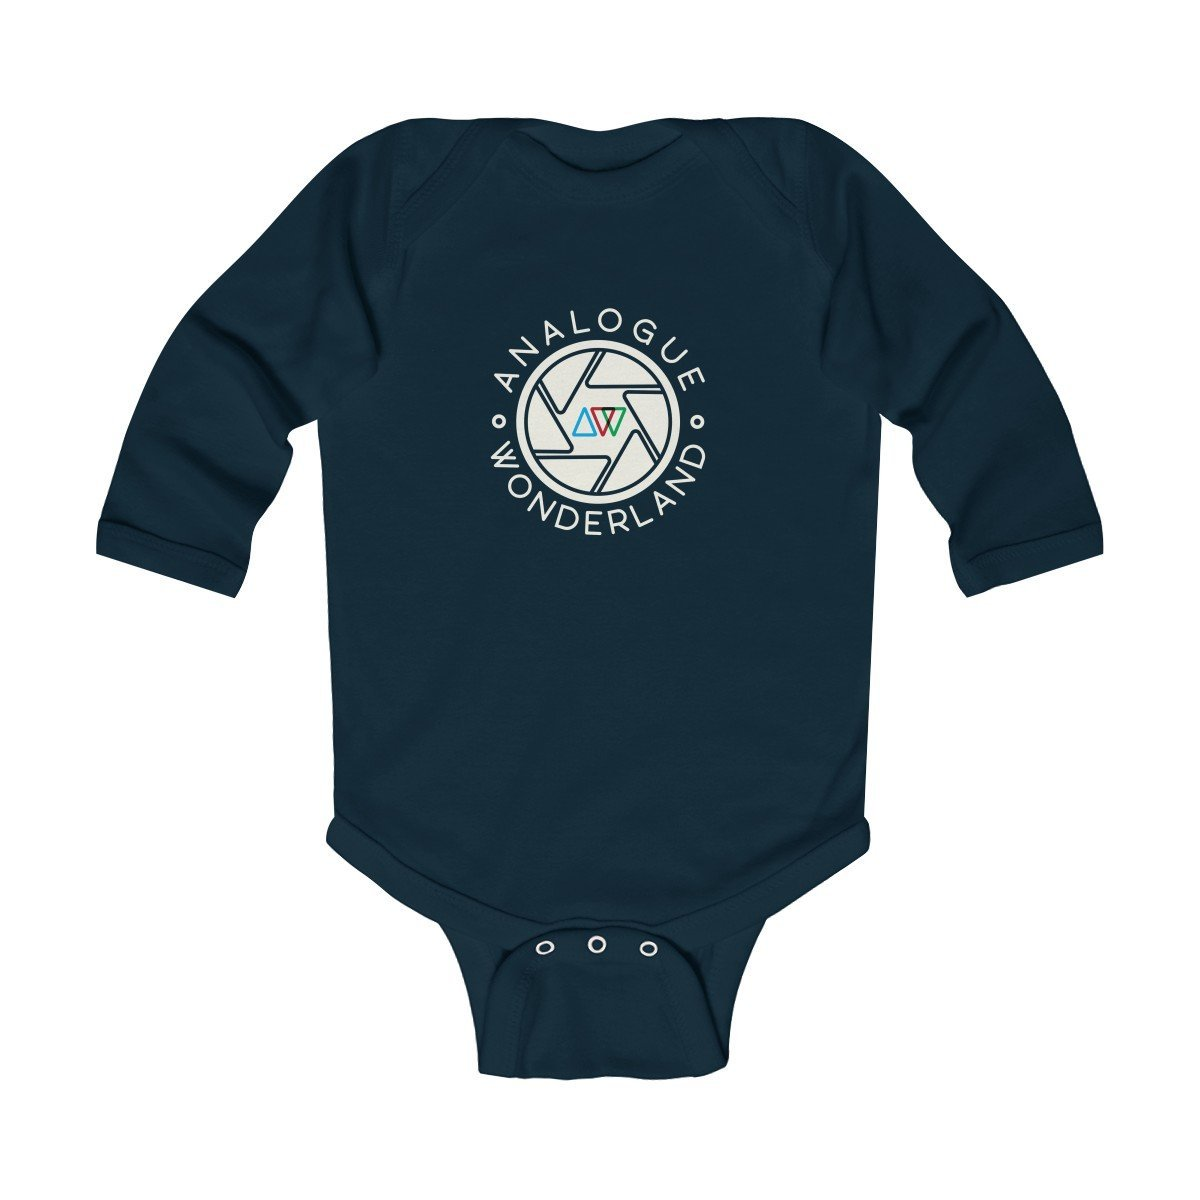 Infant Long Sleeve Soft Cotton Bodysuit - for budding Film Photographers! - Analogue Wonderland